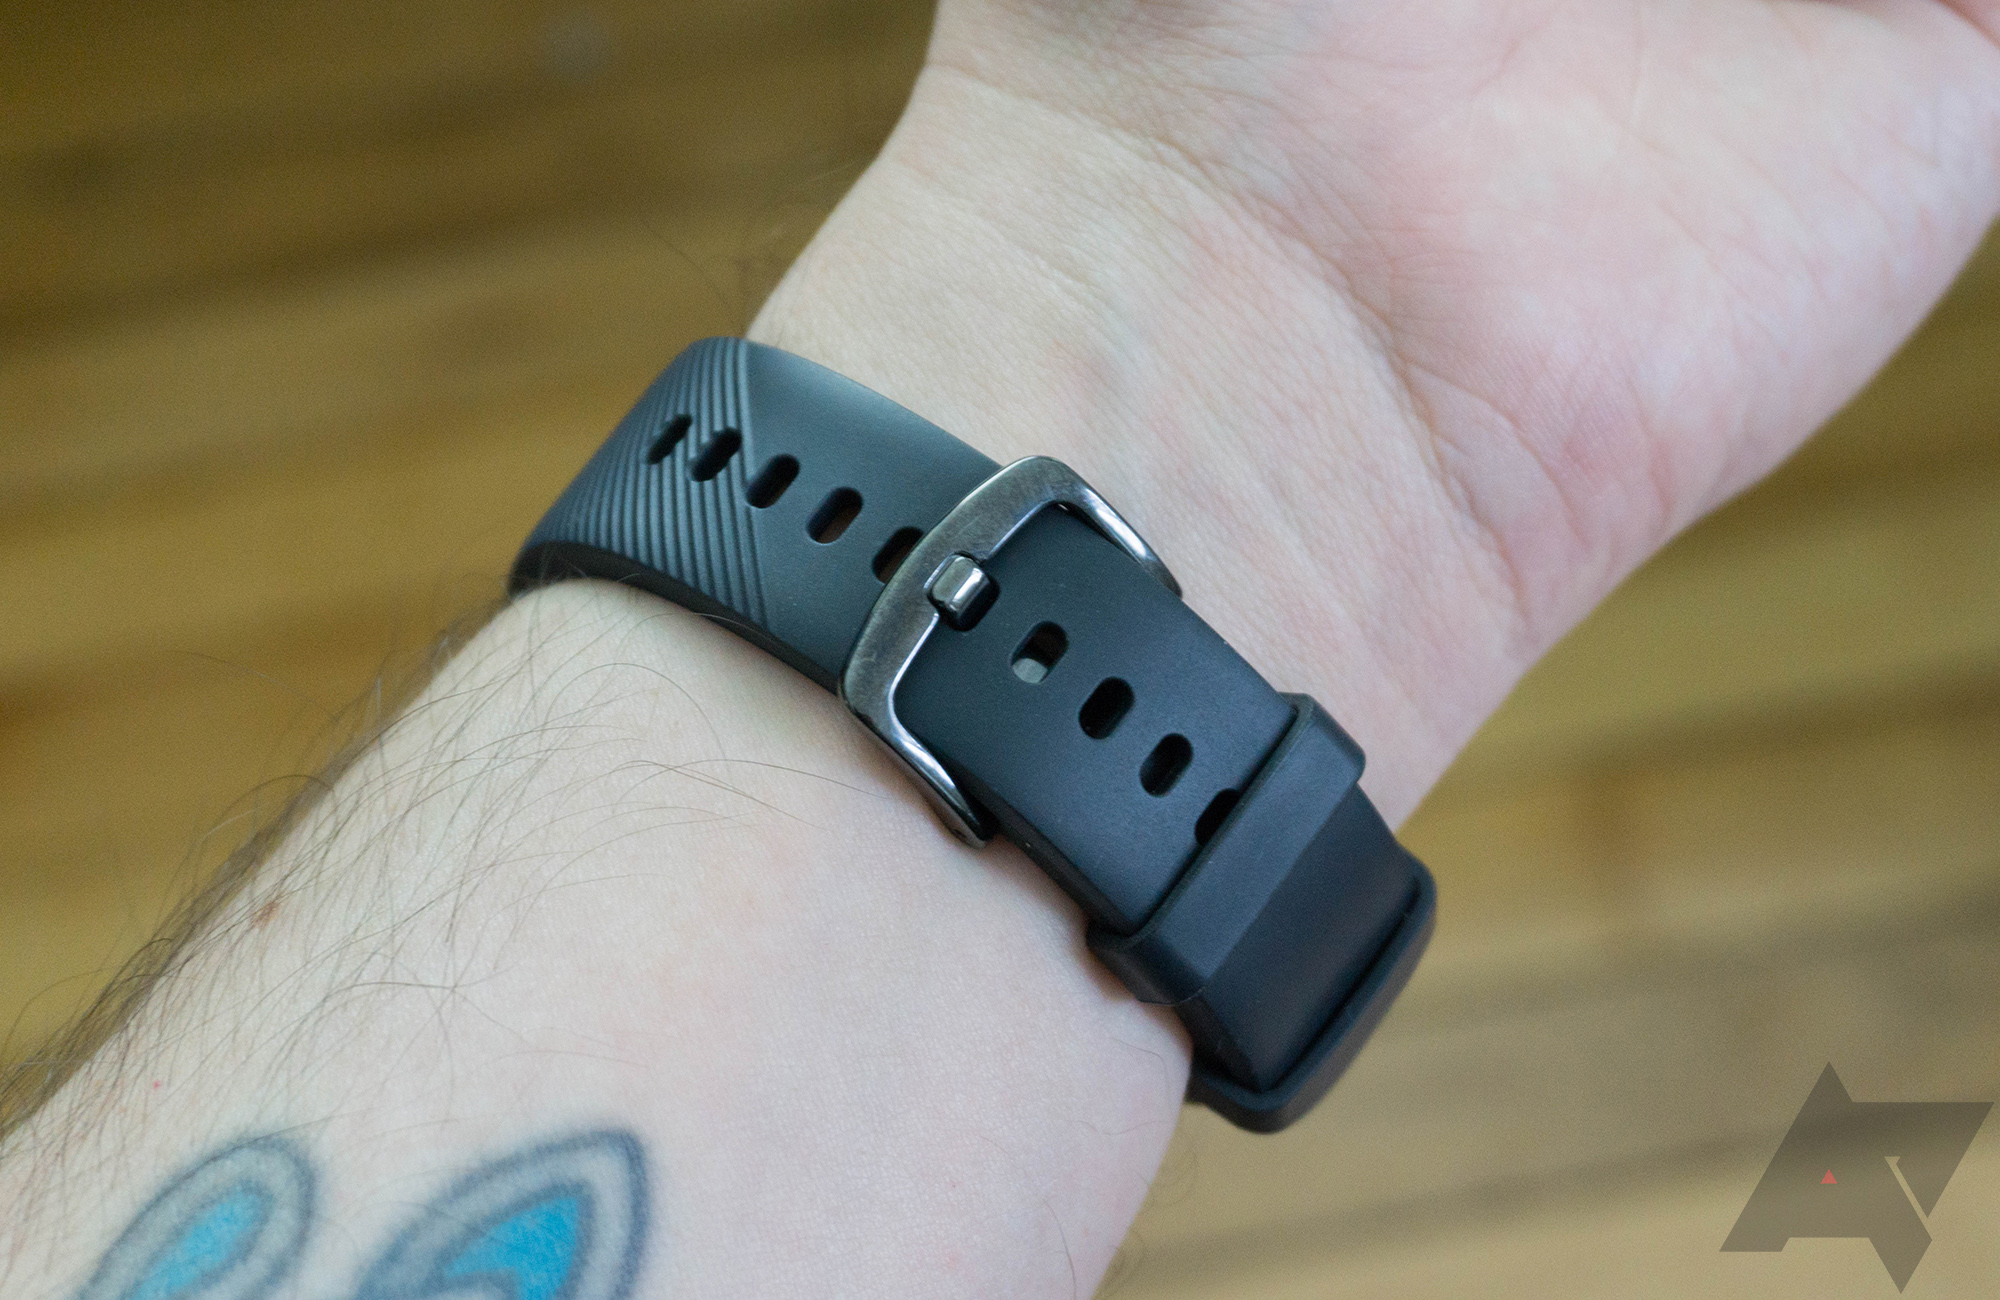 Samsung Gear Sport Review A Smartwatch Regular People Might The Pebble Smart Watch Will Include Flexible Circuit Board Case Is Only 429mm Across Which Makes It Comfortable To Wear For Most I Usually Find That Smartwatches Have Little More Bulk Than